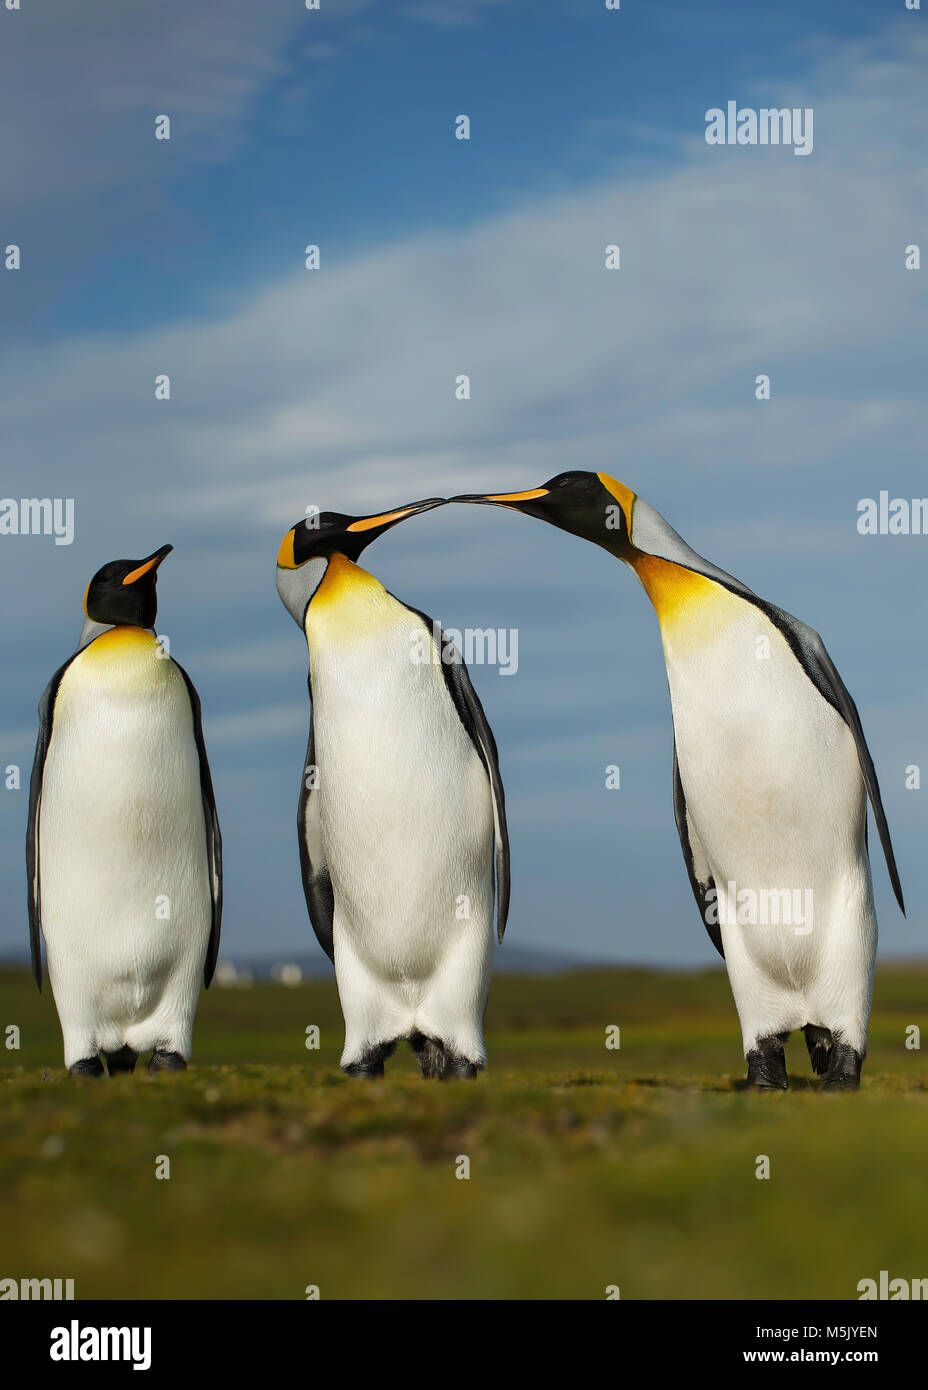 Three King penguins displaying aggressive behavior during mating season, Falkland islands. Stock Photo